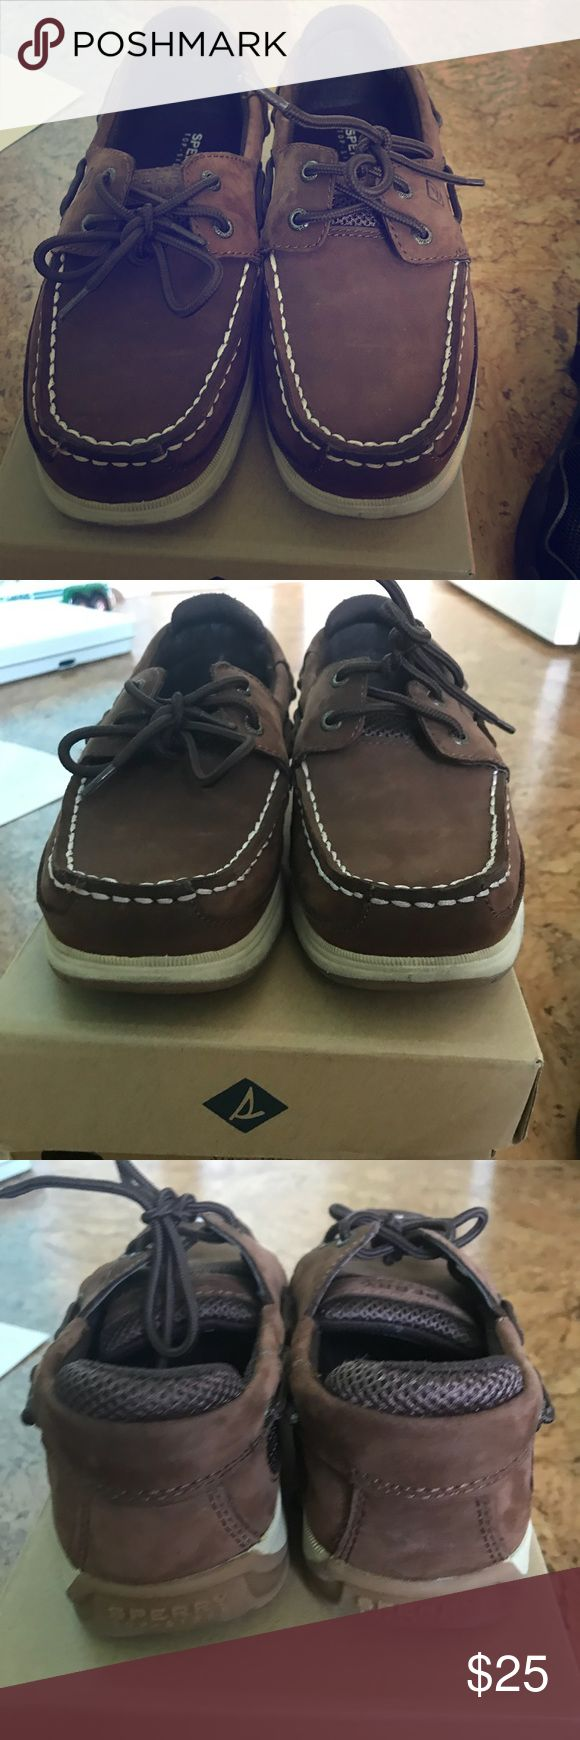 Boys Sperry shoes size 2.5y Brown leather Sperry shoes. Only wore a couple of times. Boys size 2.5. Like new condition. Located in Golde Gate. Sperry Top-Sider Shoes Dress Shoes